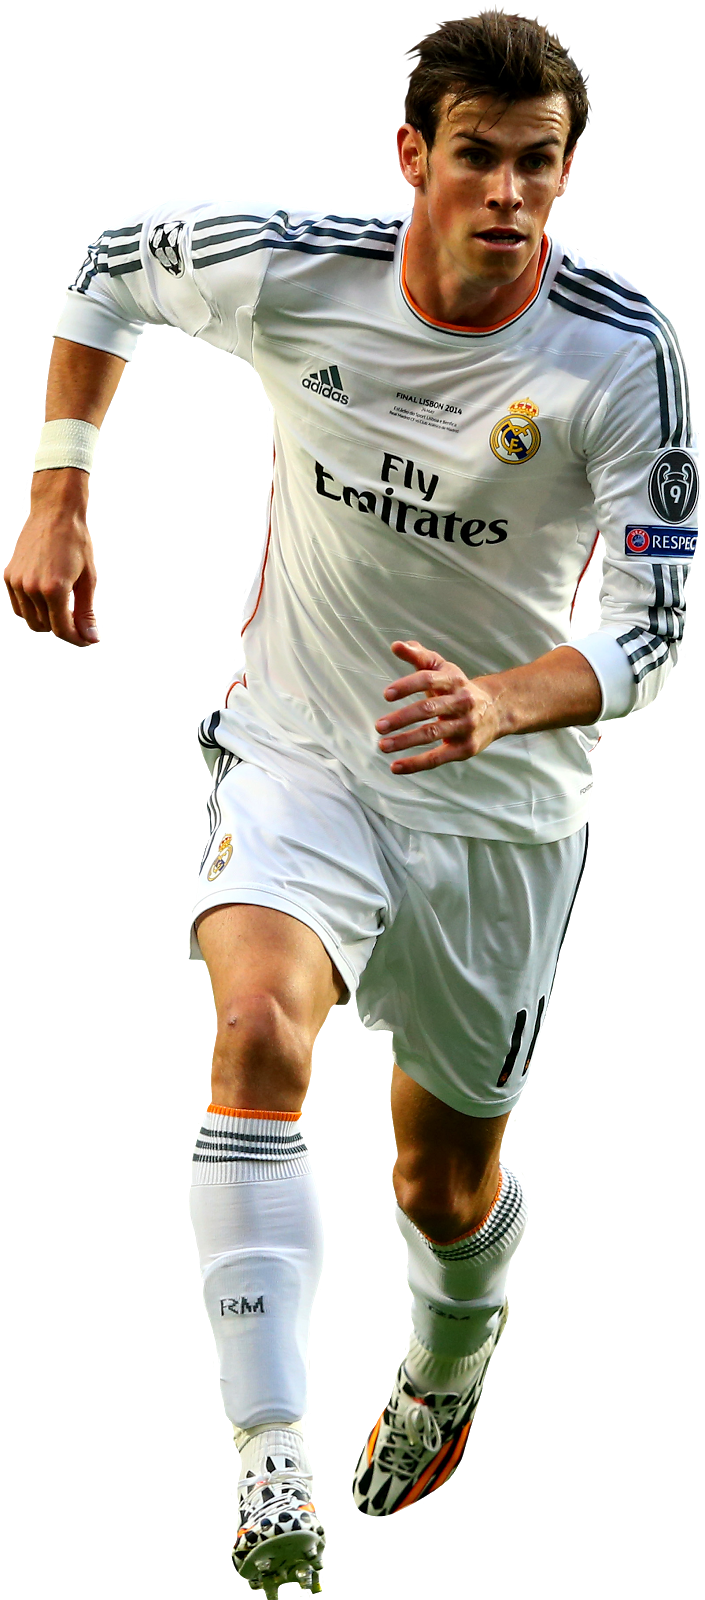 Gareth Bale of Real Madrid in the 2014 Champions League ...